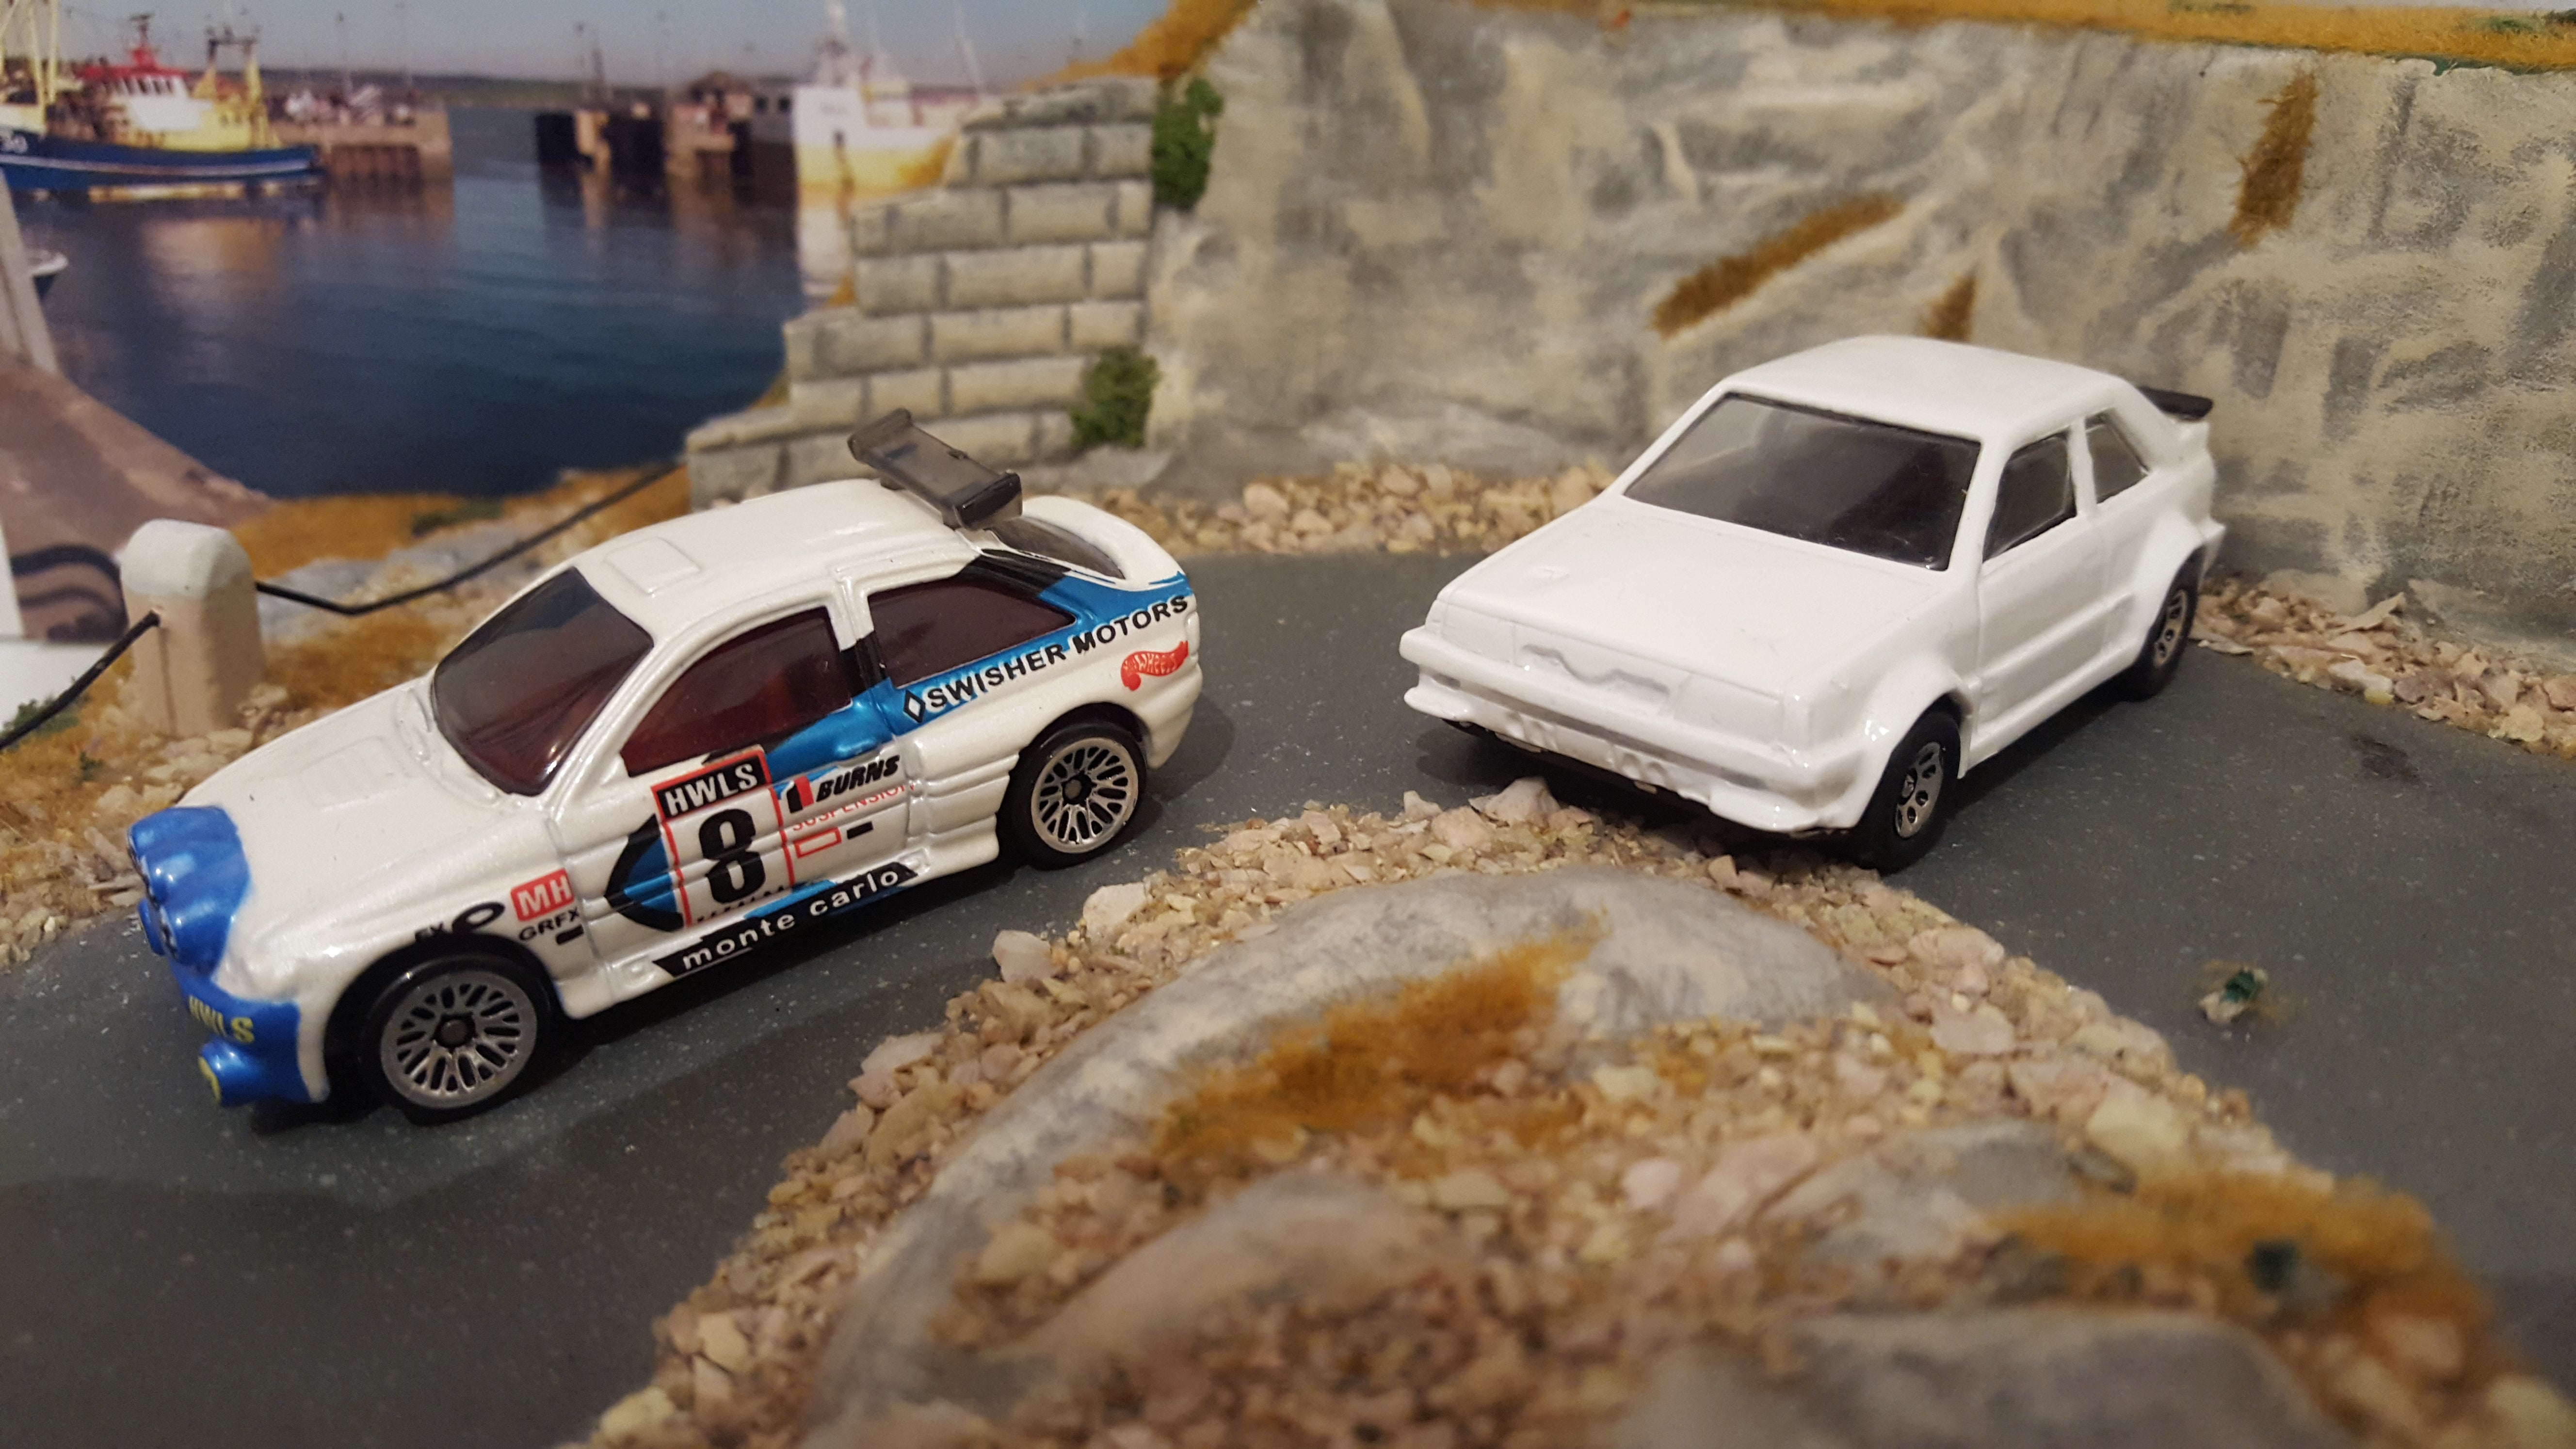 The Hot wheels Ford Escort F2 kit car and very rare pre production of the never released Ford Escort RS1700T . & My 1st post  so I thought I would show two of my favourite cars markmcfarlin.com